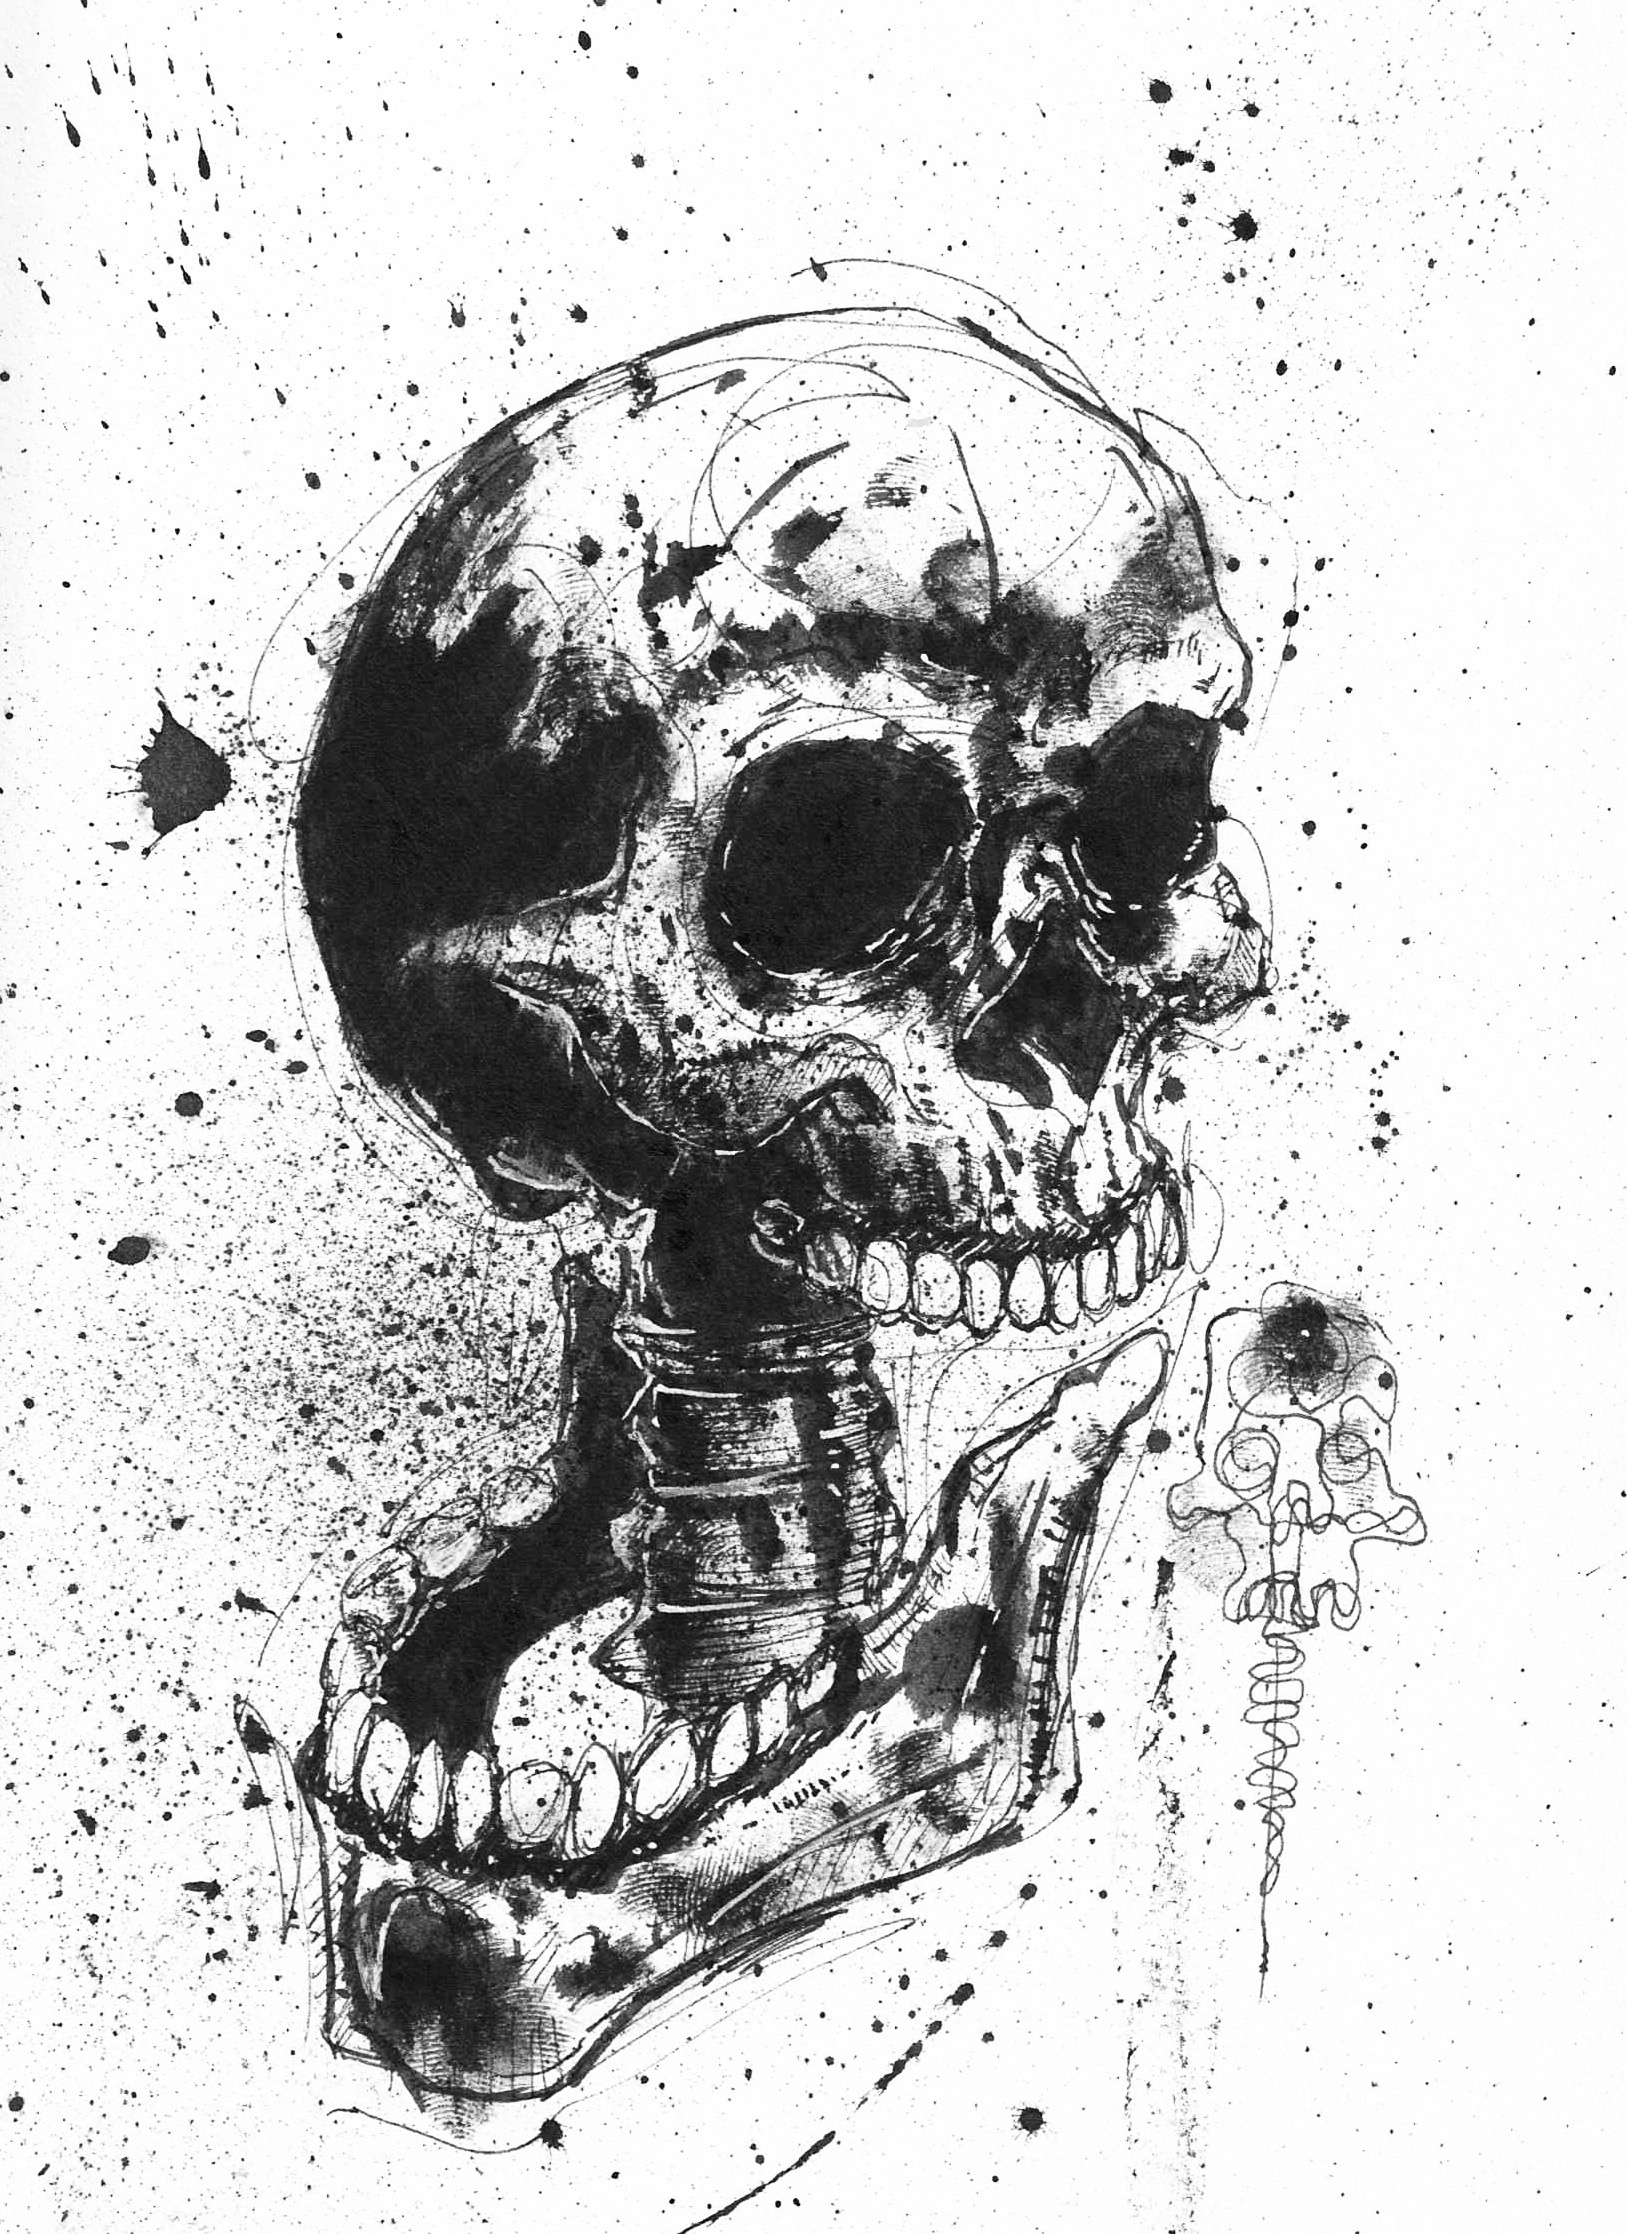 Skull With Jaw Dropped: Jaw Dropping